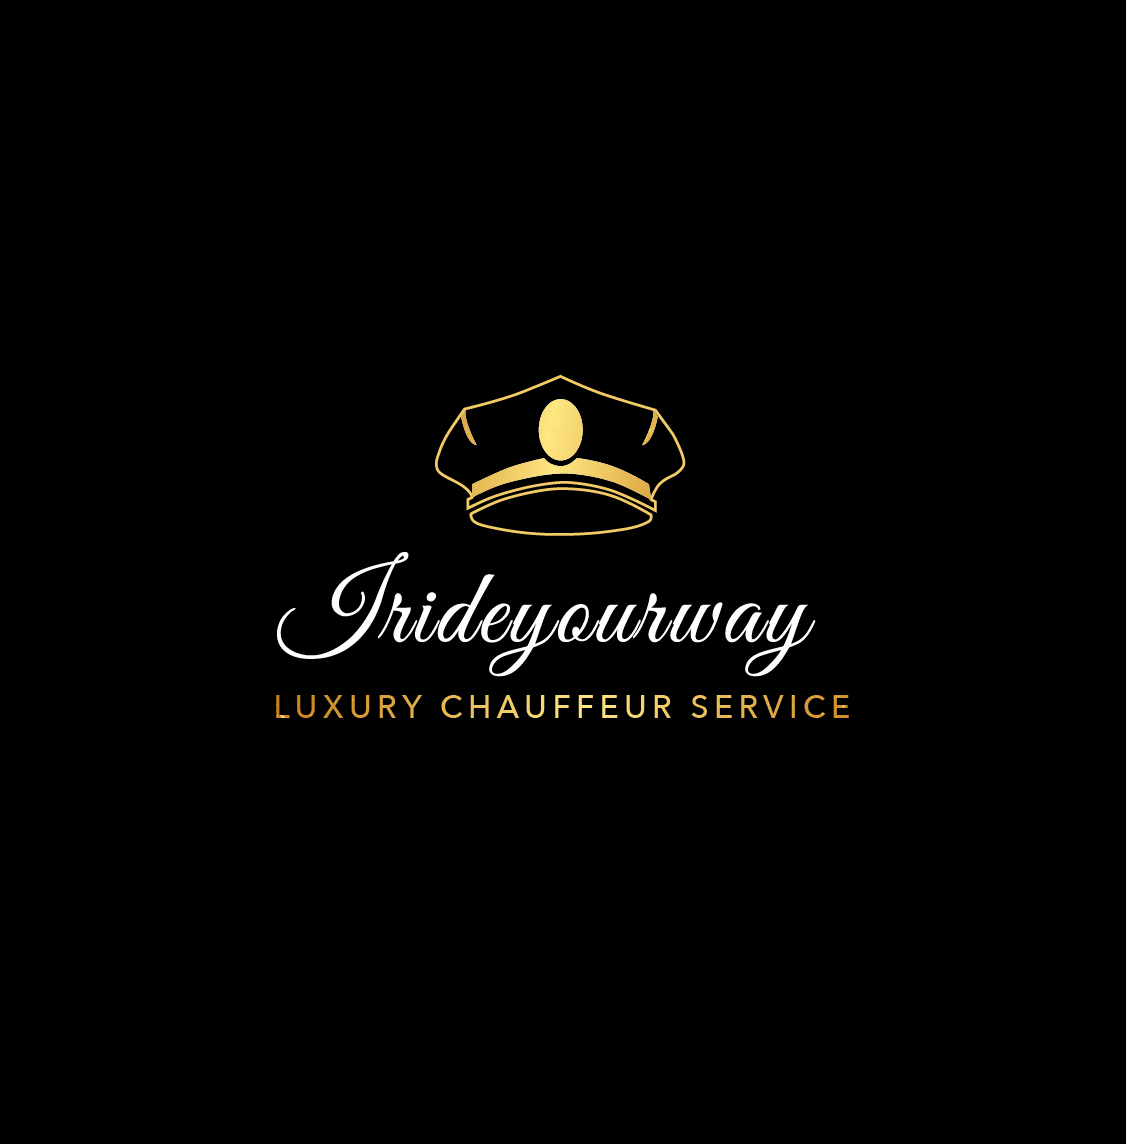 IRIDEYOURWAY.COM - OFFICIAL LOGO LUXURY CHAUFFEUR COMPANY